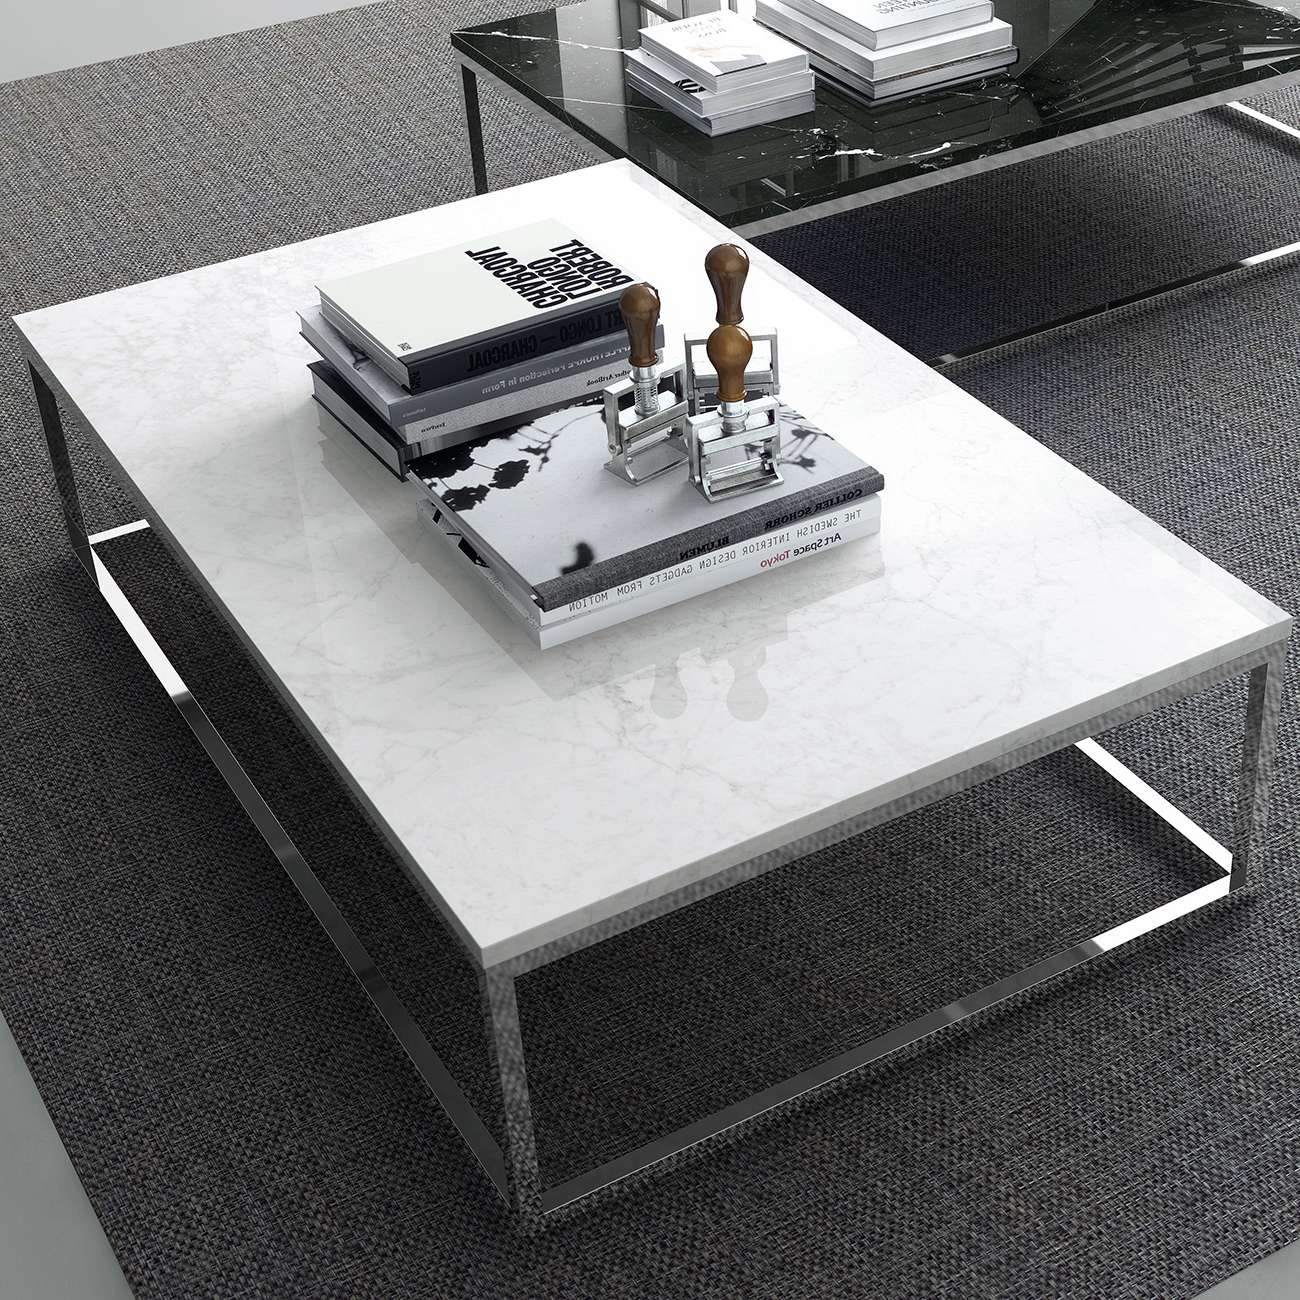 Chrome Legs, Tema Home Throughout Well Liked White And Chrome Coffee Tables (View 4 of 20)